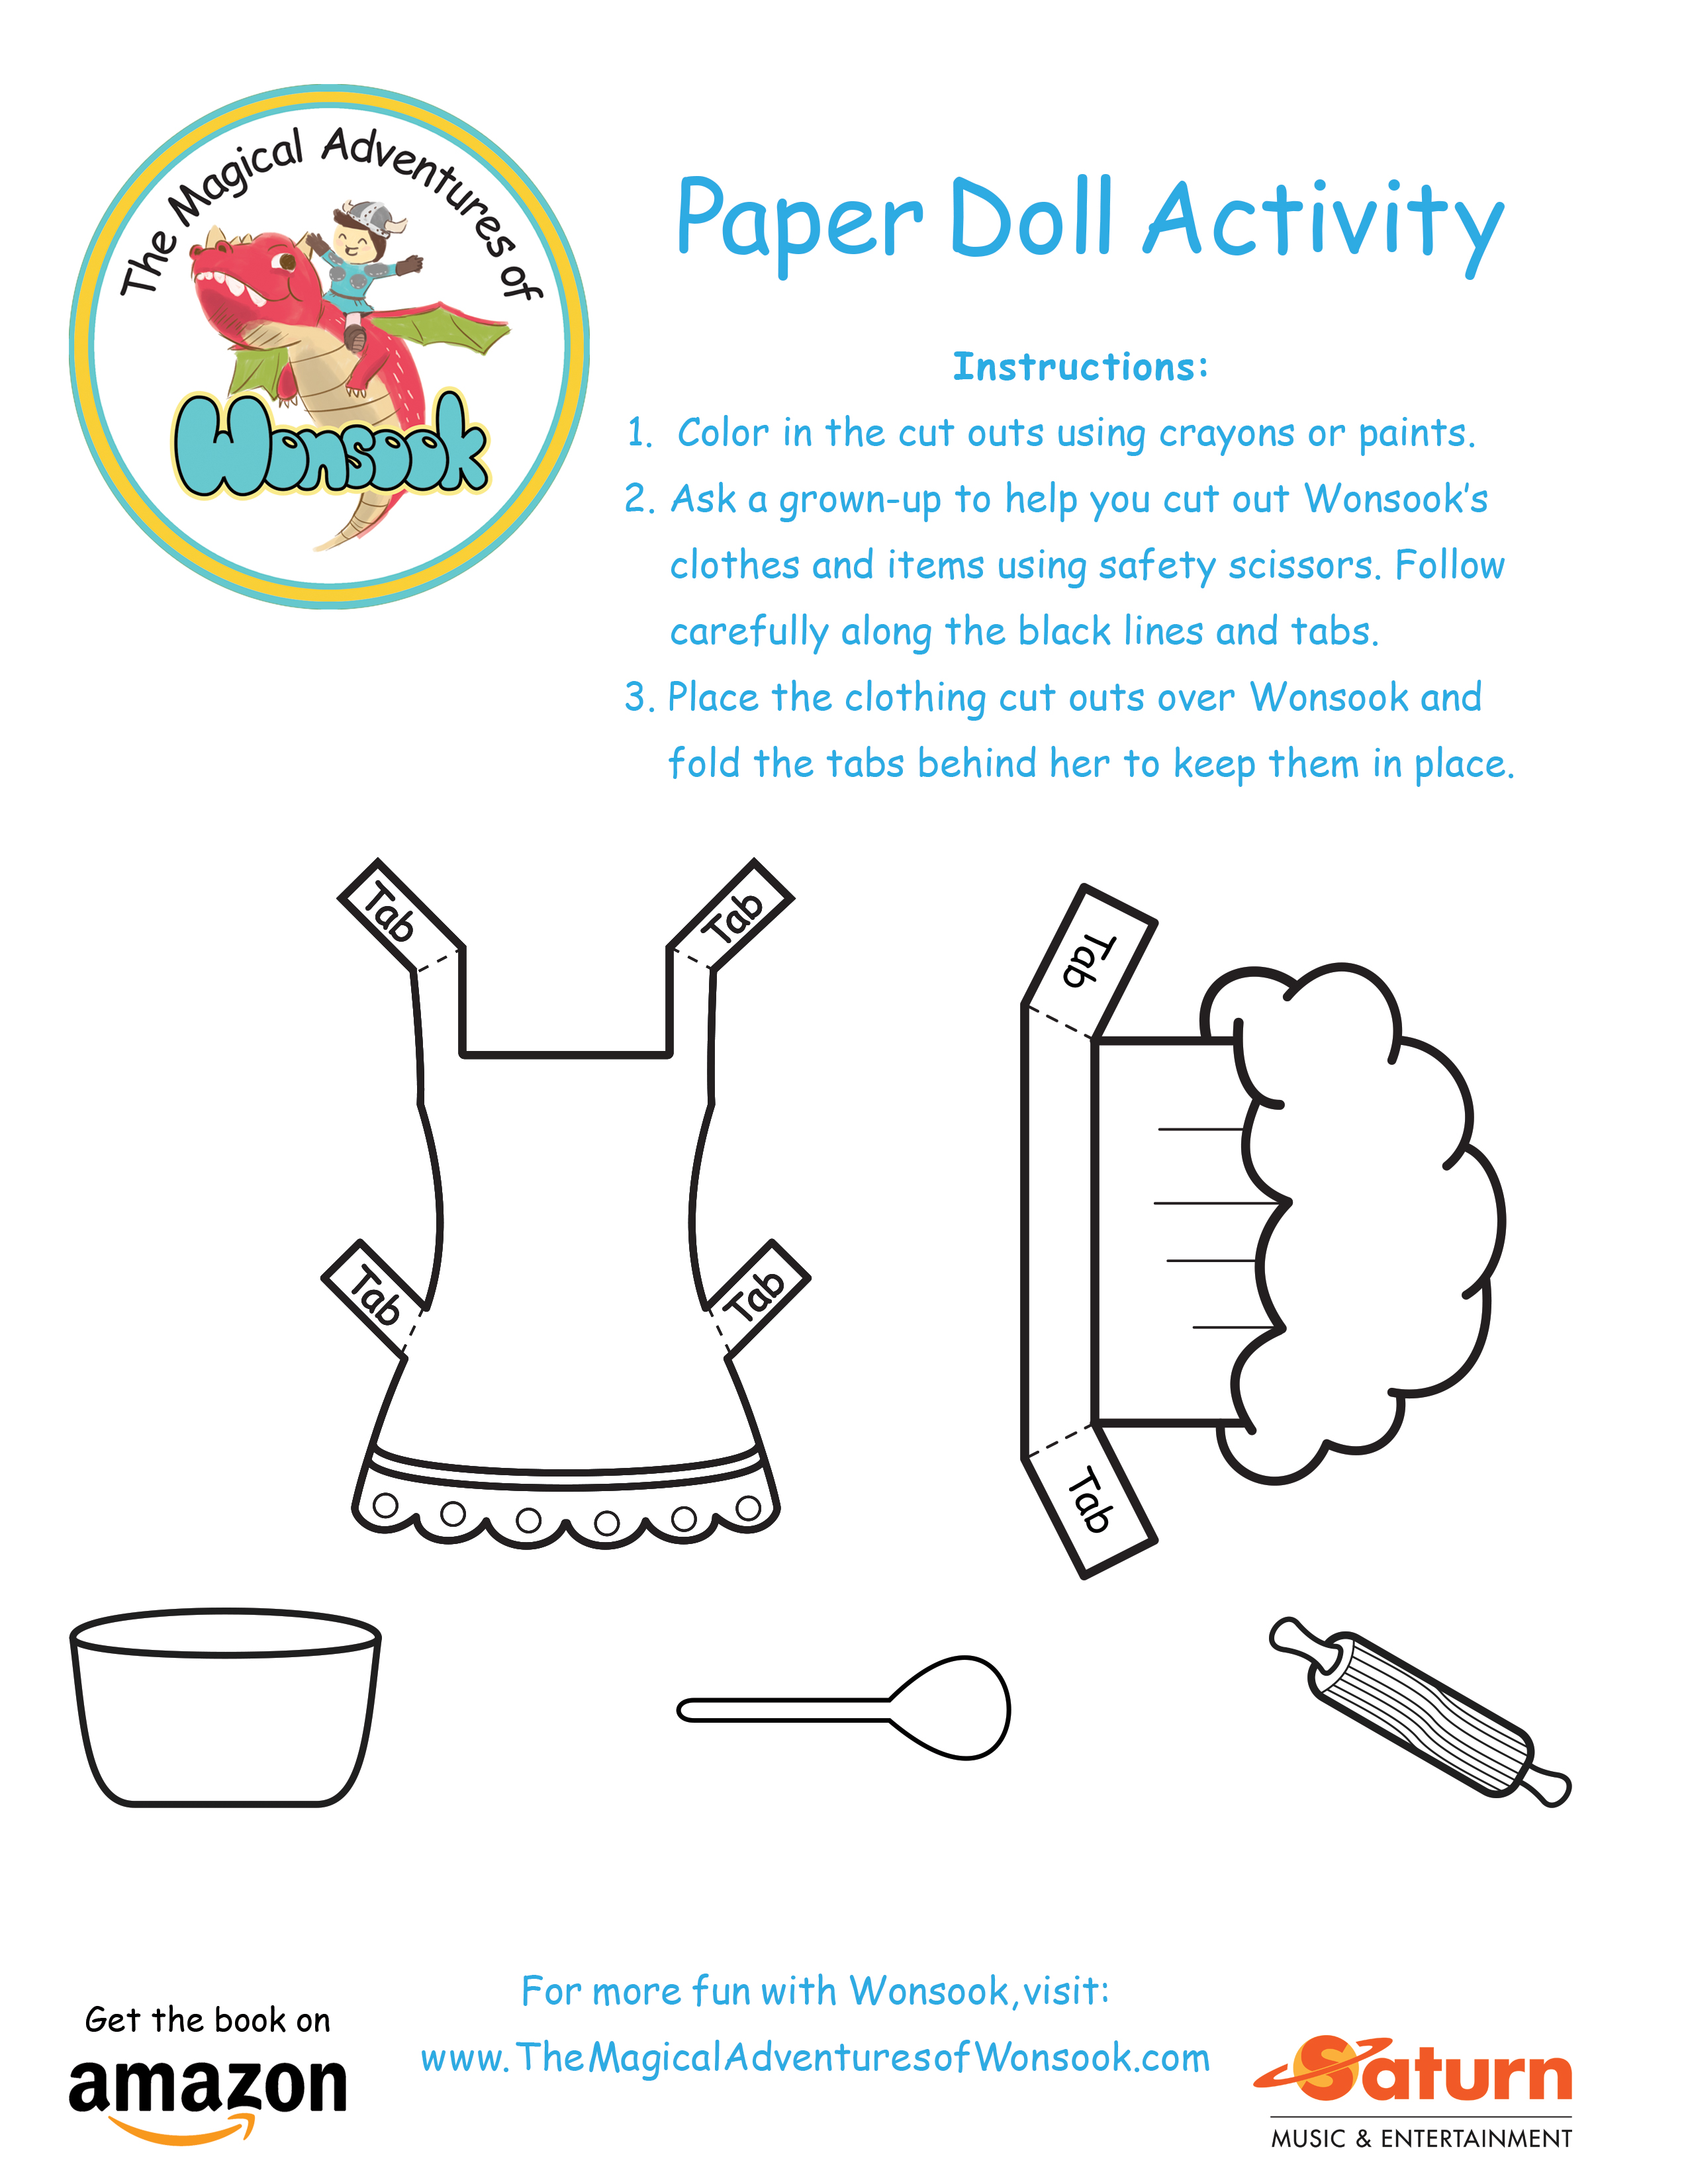 Wonsook Paper Doll Activity - Chef Outfit